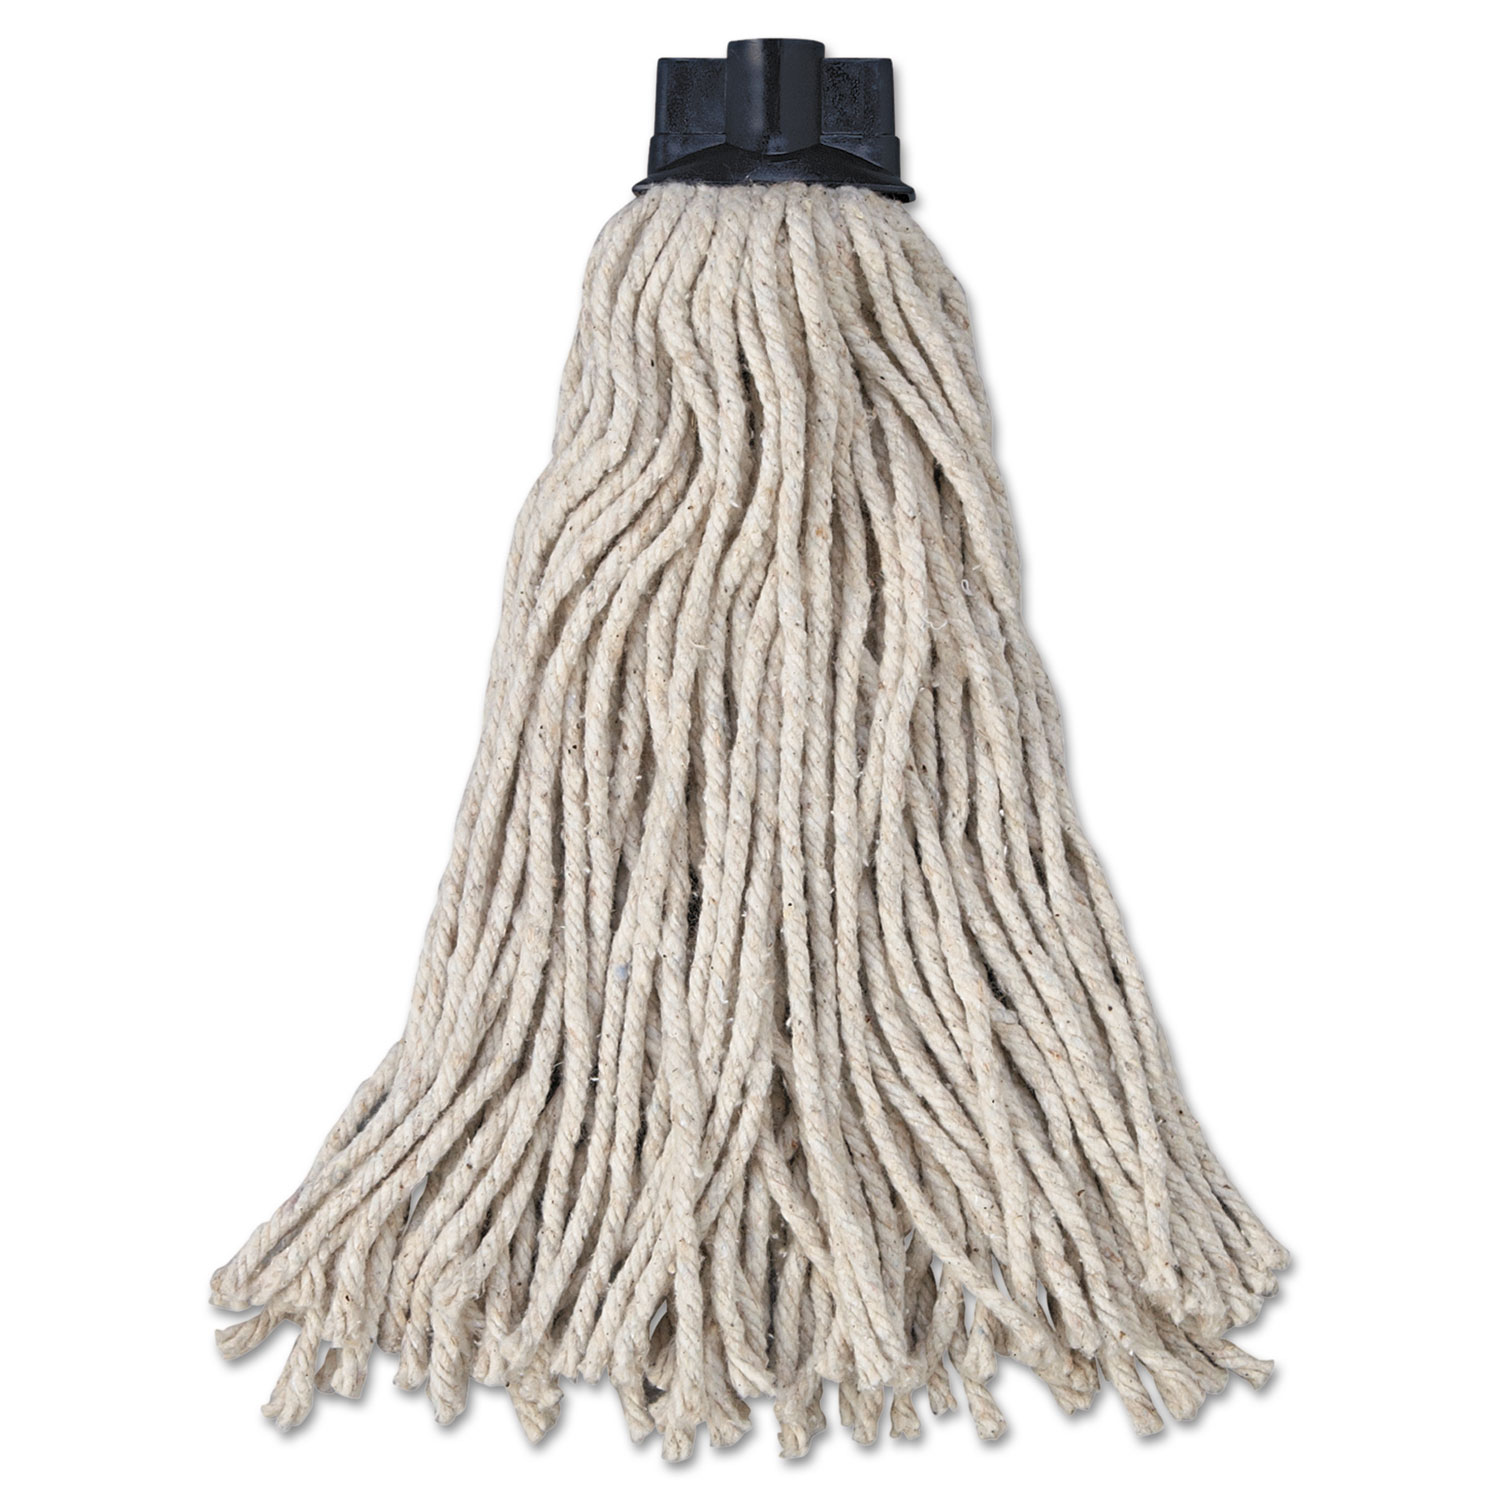 Replacement Mop Head For Mop/Handle Combo, Cotton, White, 12/Carton RCPG04300